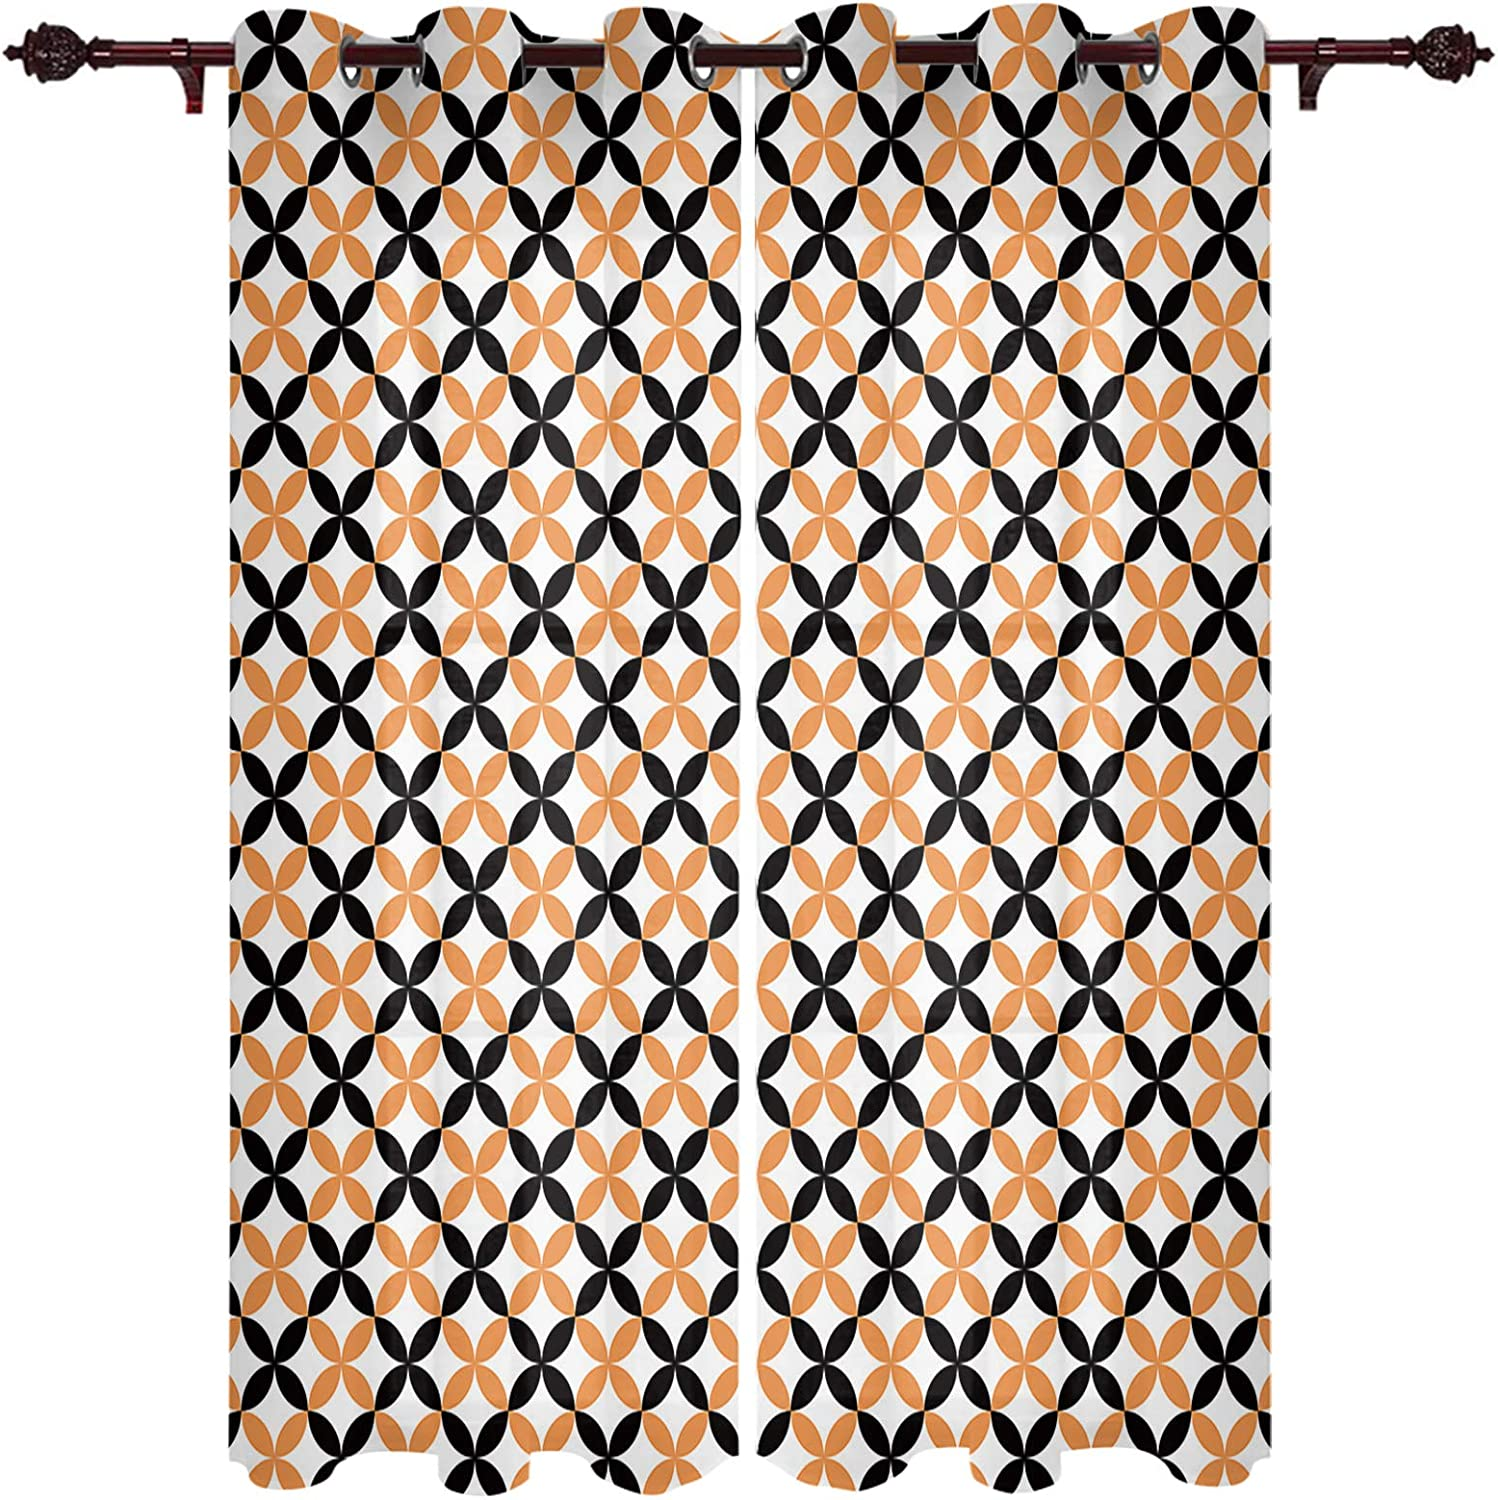 High quality new Ranking TOP10 Semi Sheer Curtain Window Treatment Panels Ro for Living